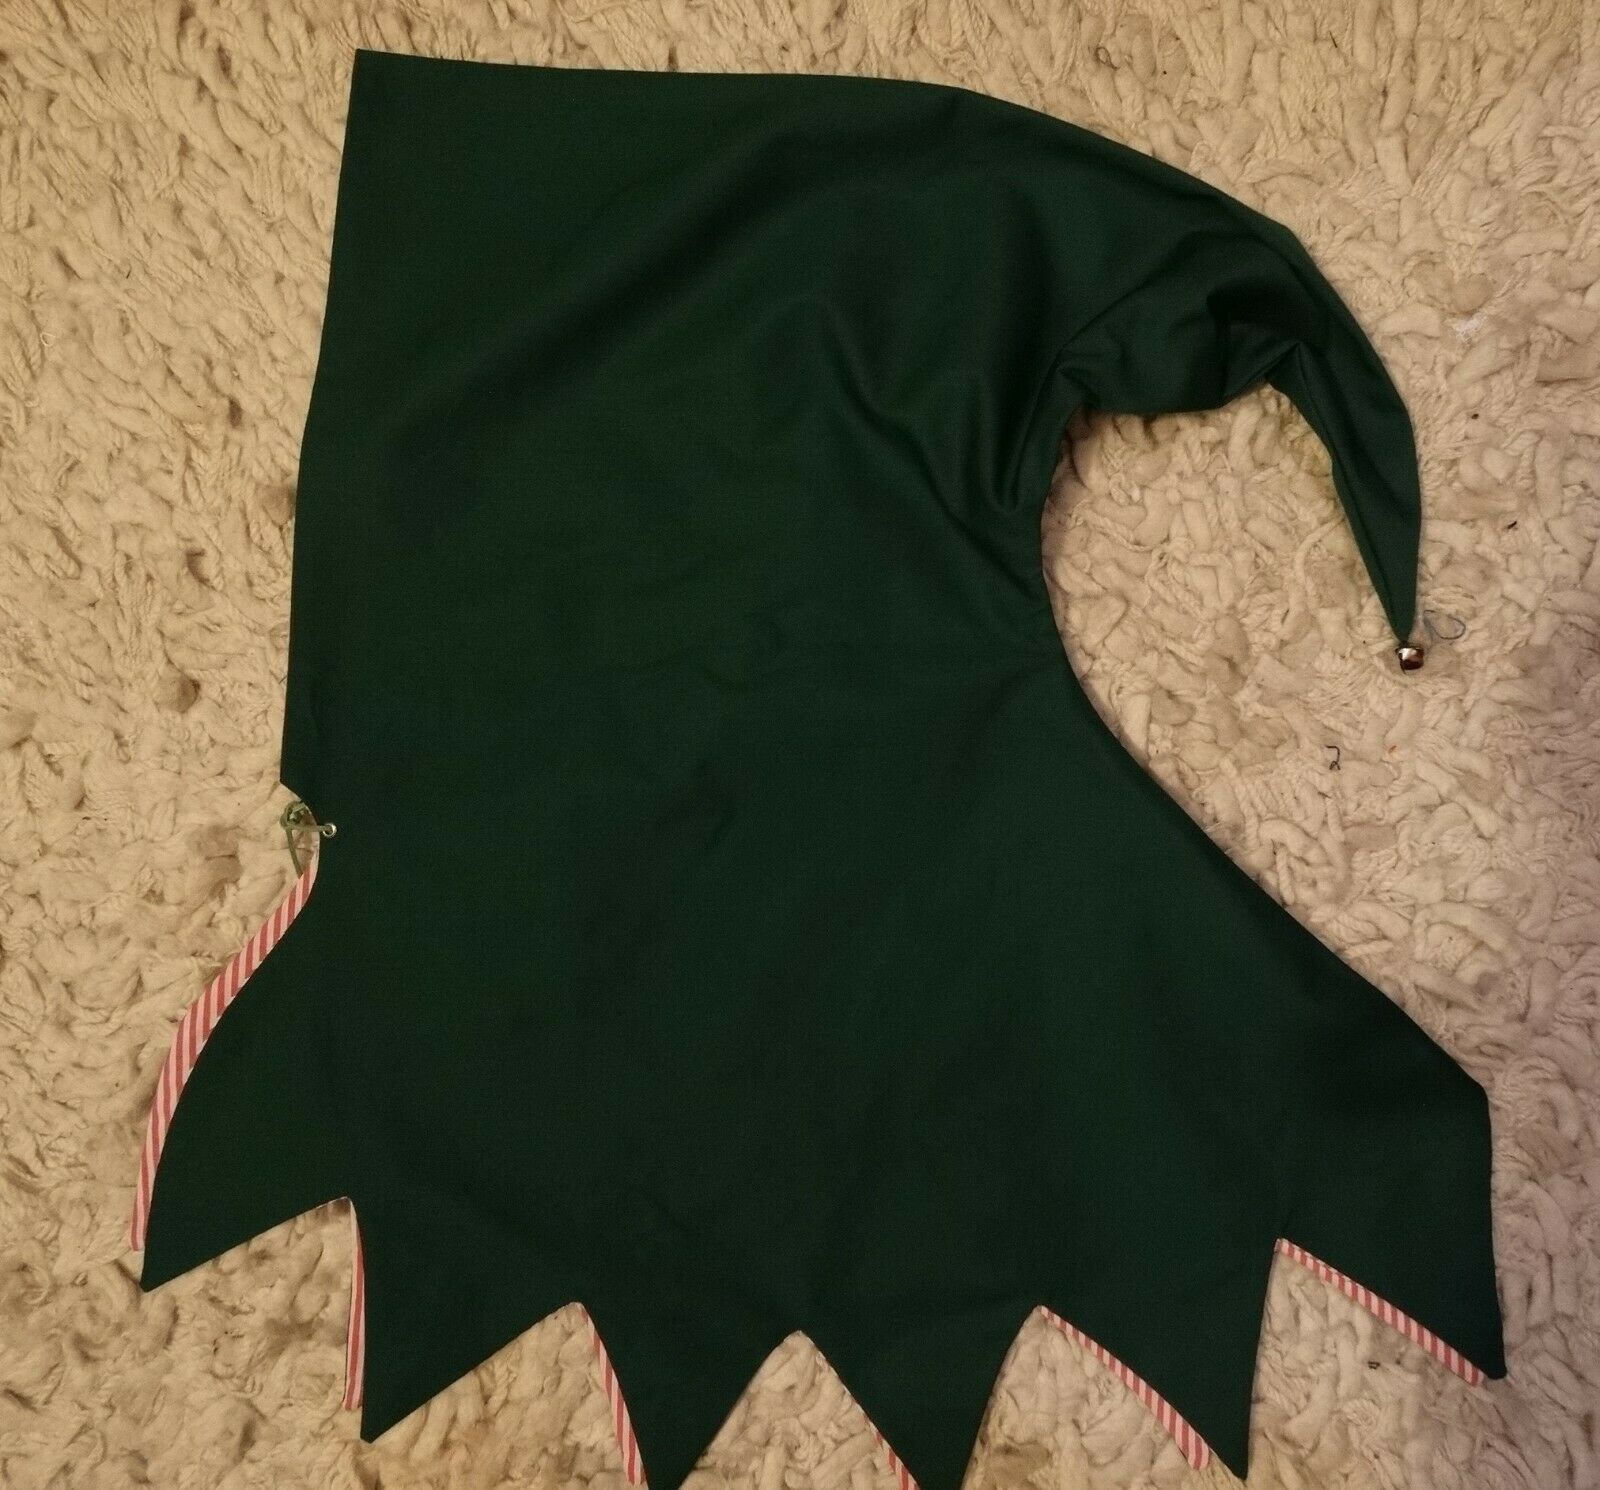 Medieval Style Jesters Hood - Re-enactment, Cosplay, Theatre, Costume